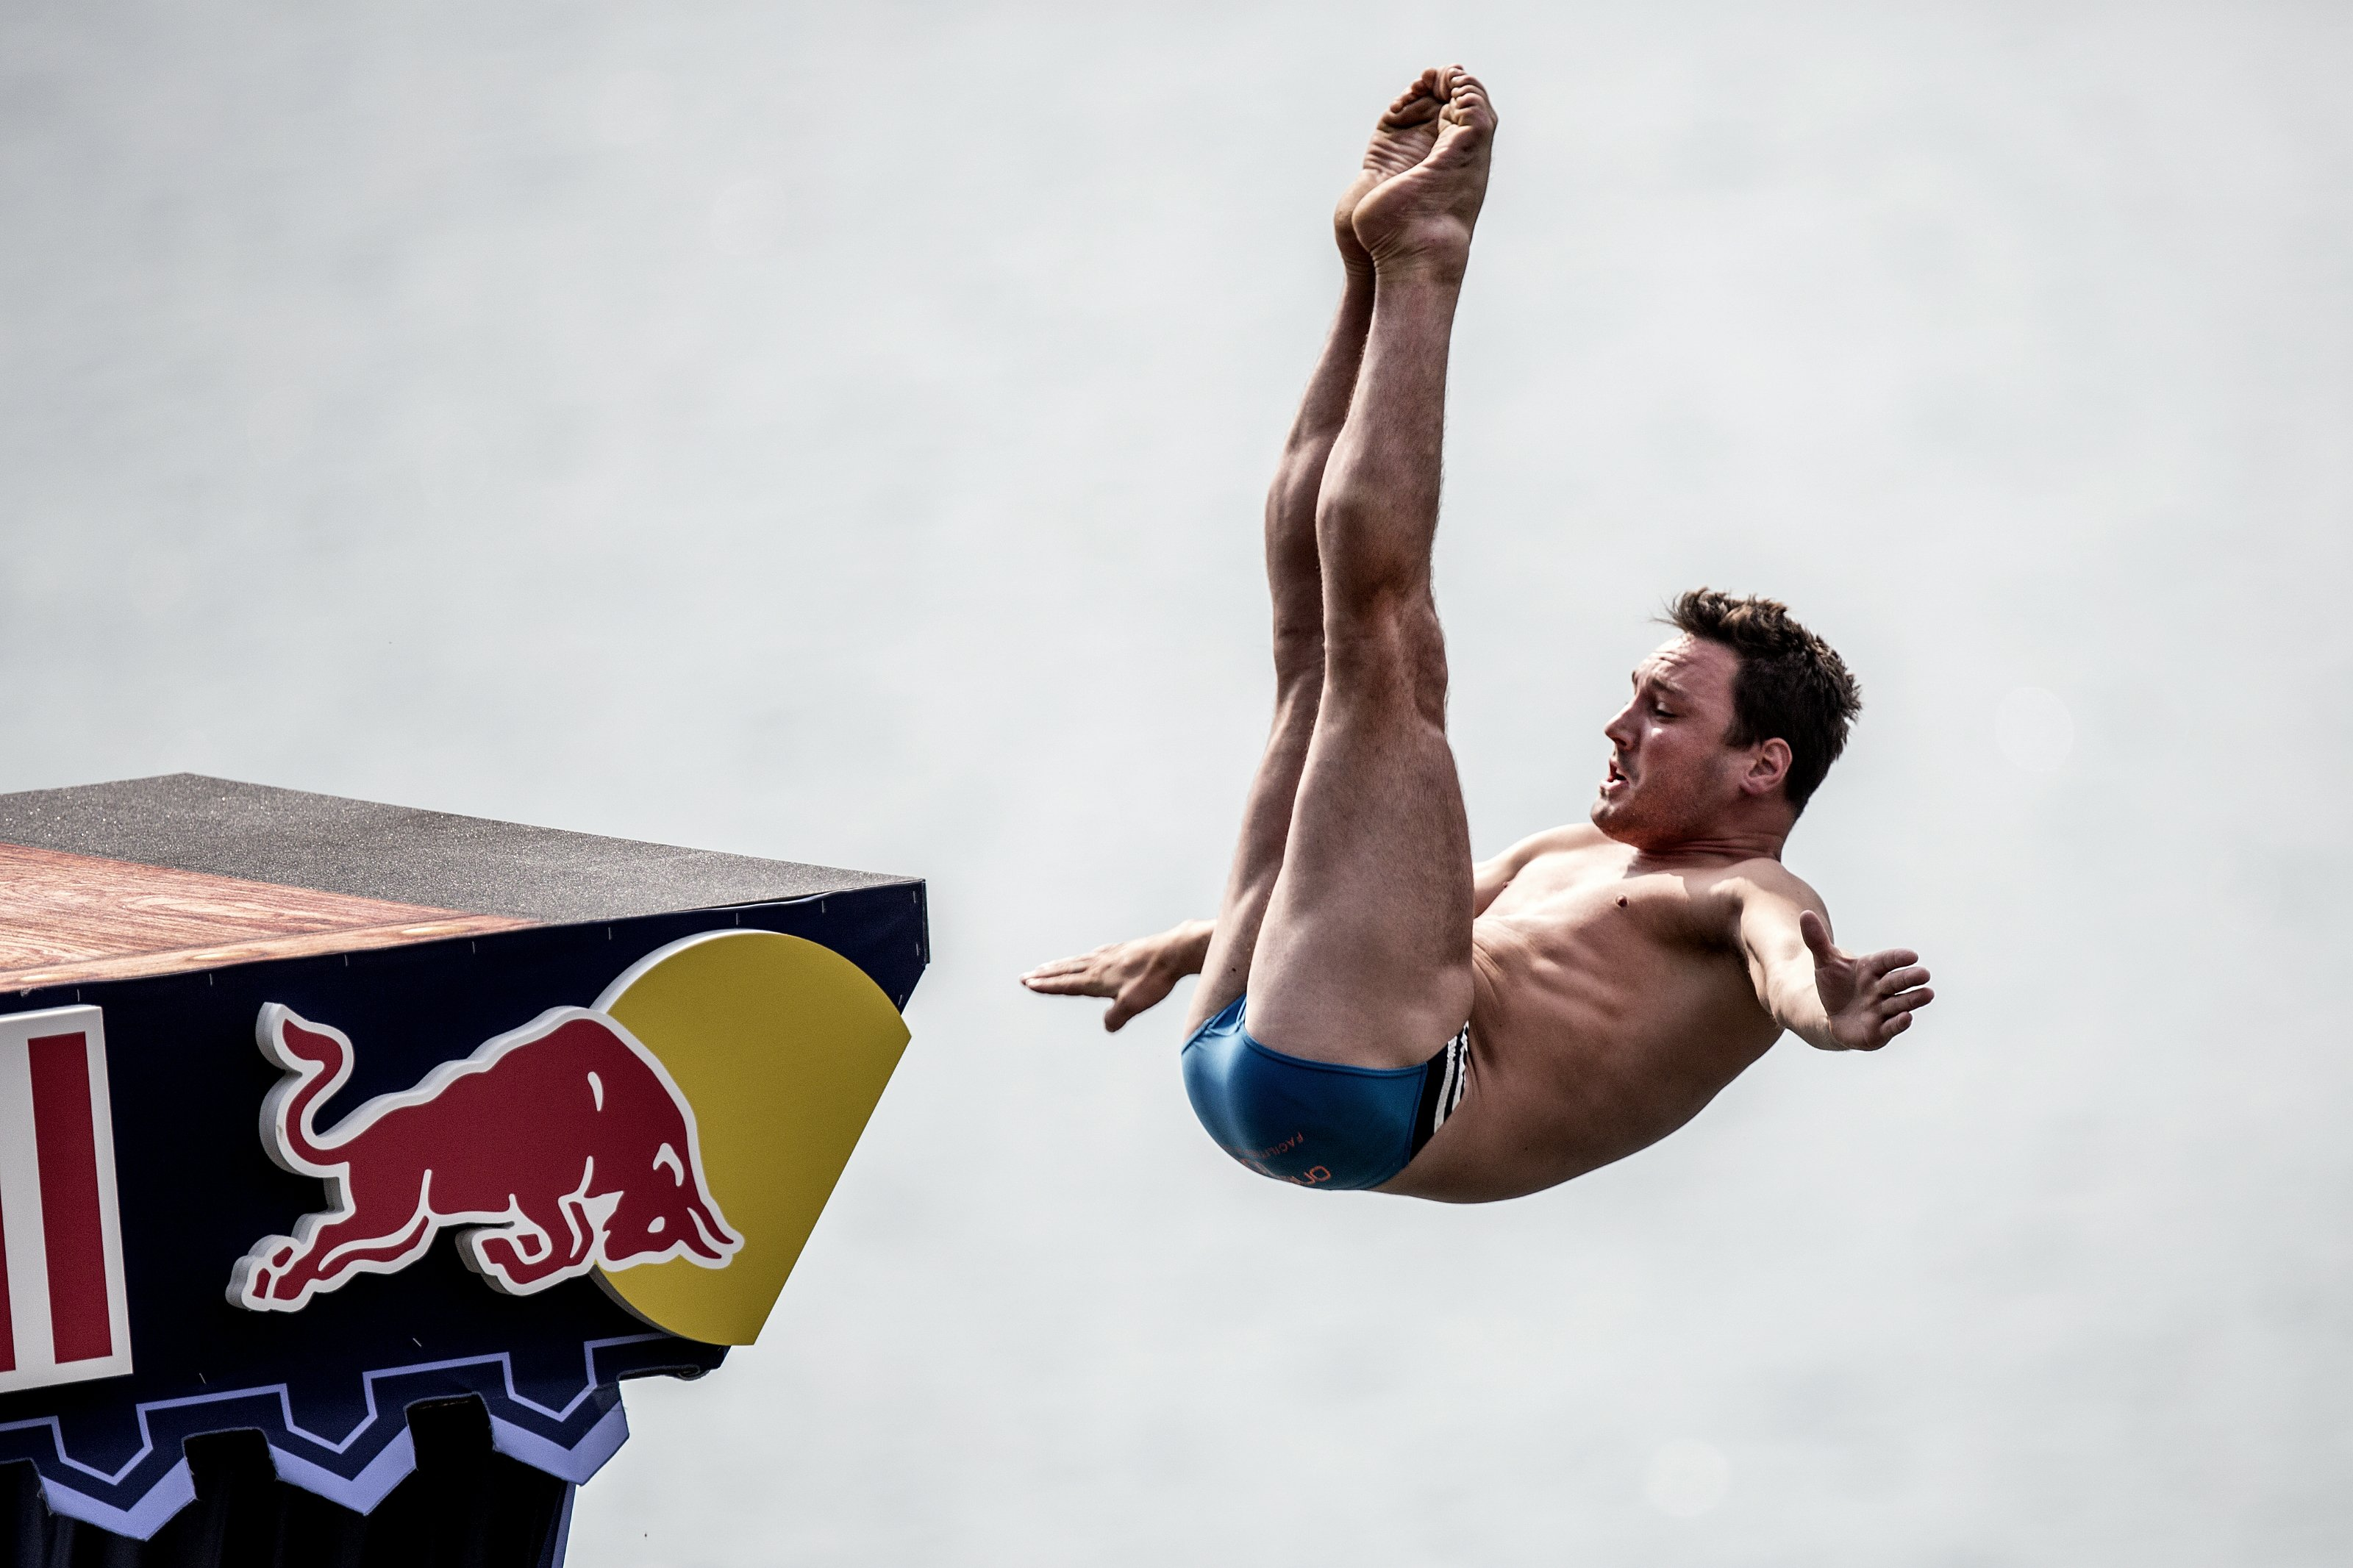 Blake Aldridge Blog: Red Bull Cliff Diving World Series Malcesine mistakes will make me stronger